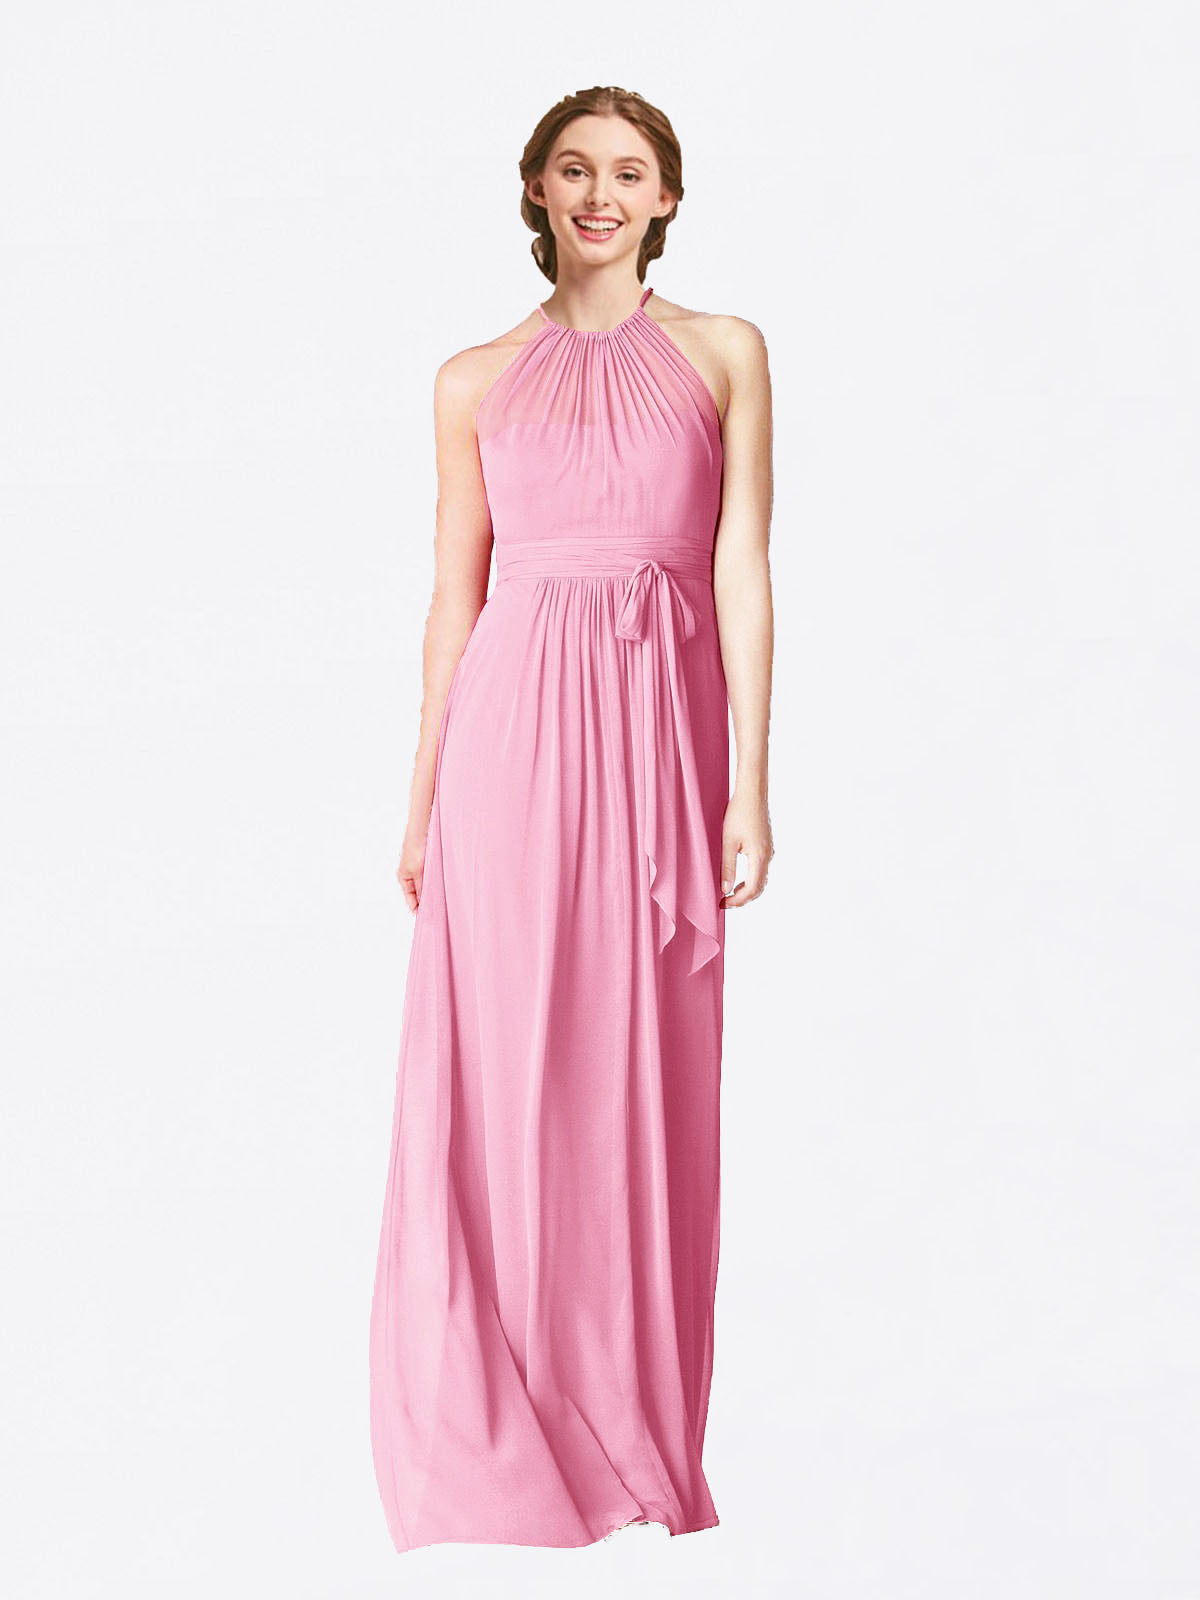 Long A-Line Halter Sleeveless Hot Pink Chiffon Bridesmaid Dress Laura